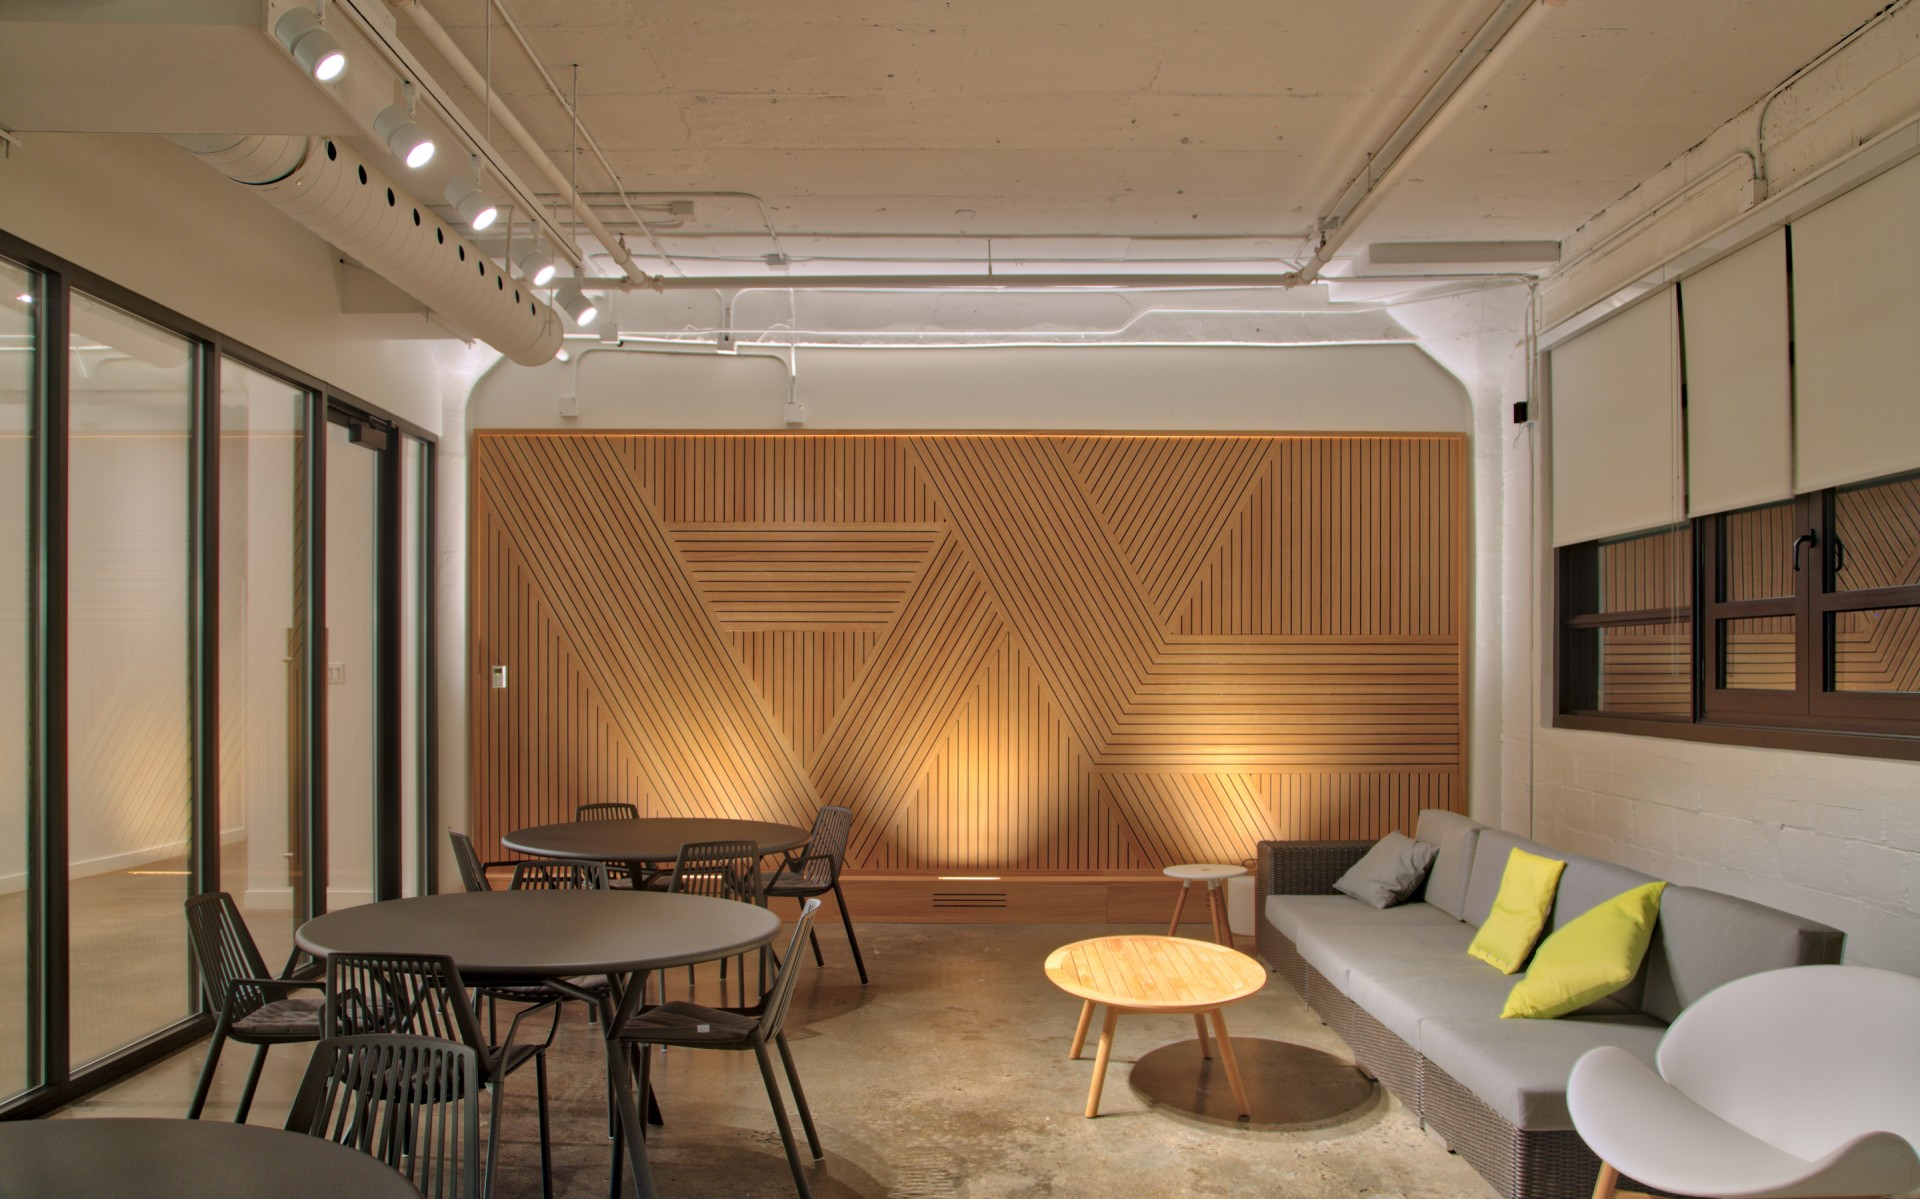 The wood paneling in the open office area is uplit using Lumenfacade projectors.